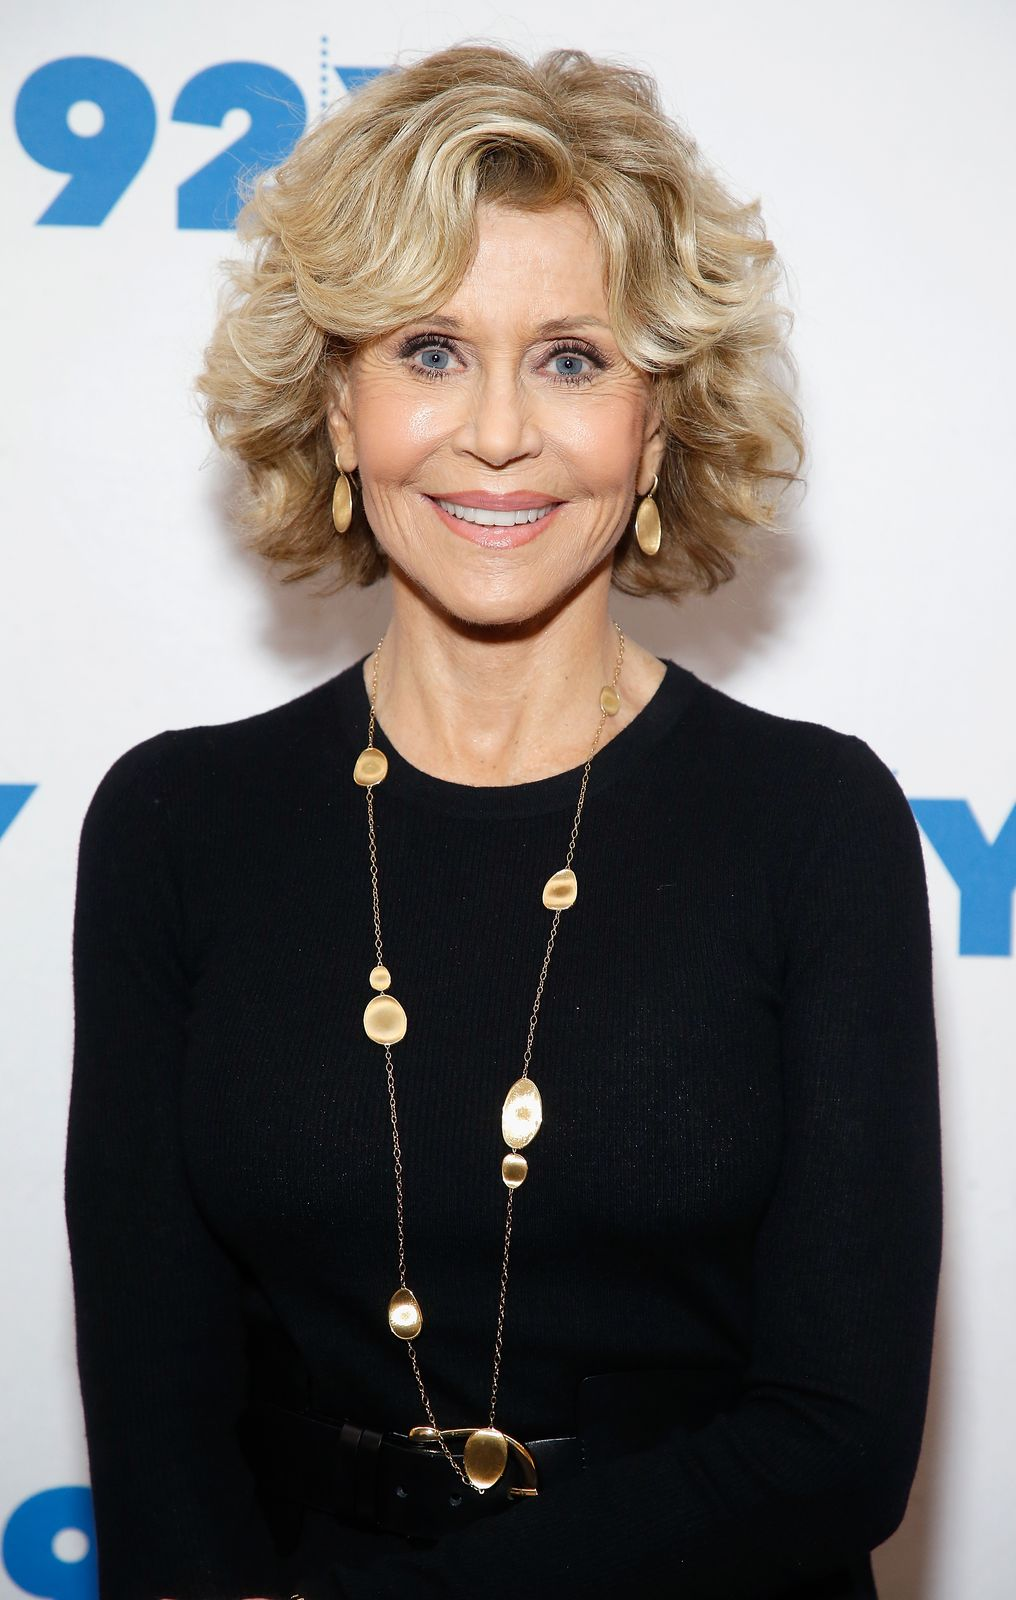 Jane Fonda poses during a conversation with Susan Lacy at the 92nd Street Y on September 21, 2018, in New York City | Photo: John Lamparski/Getty Images